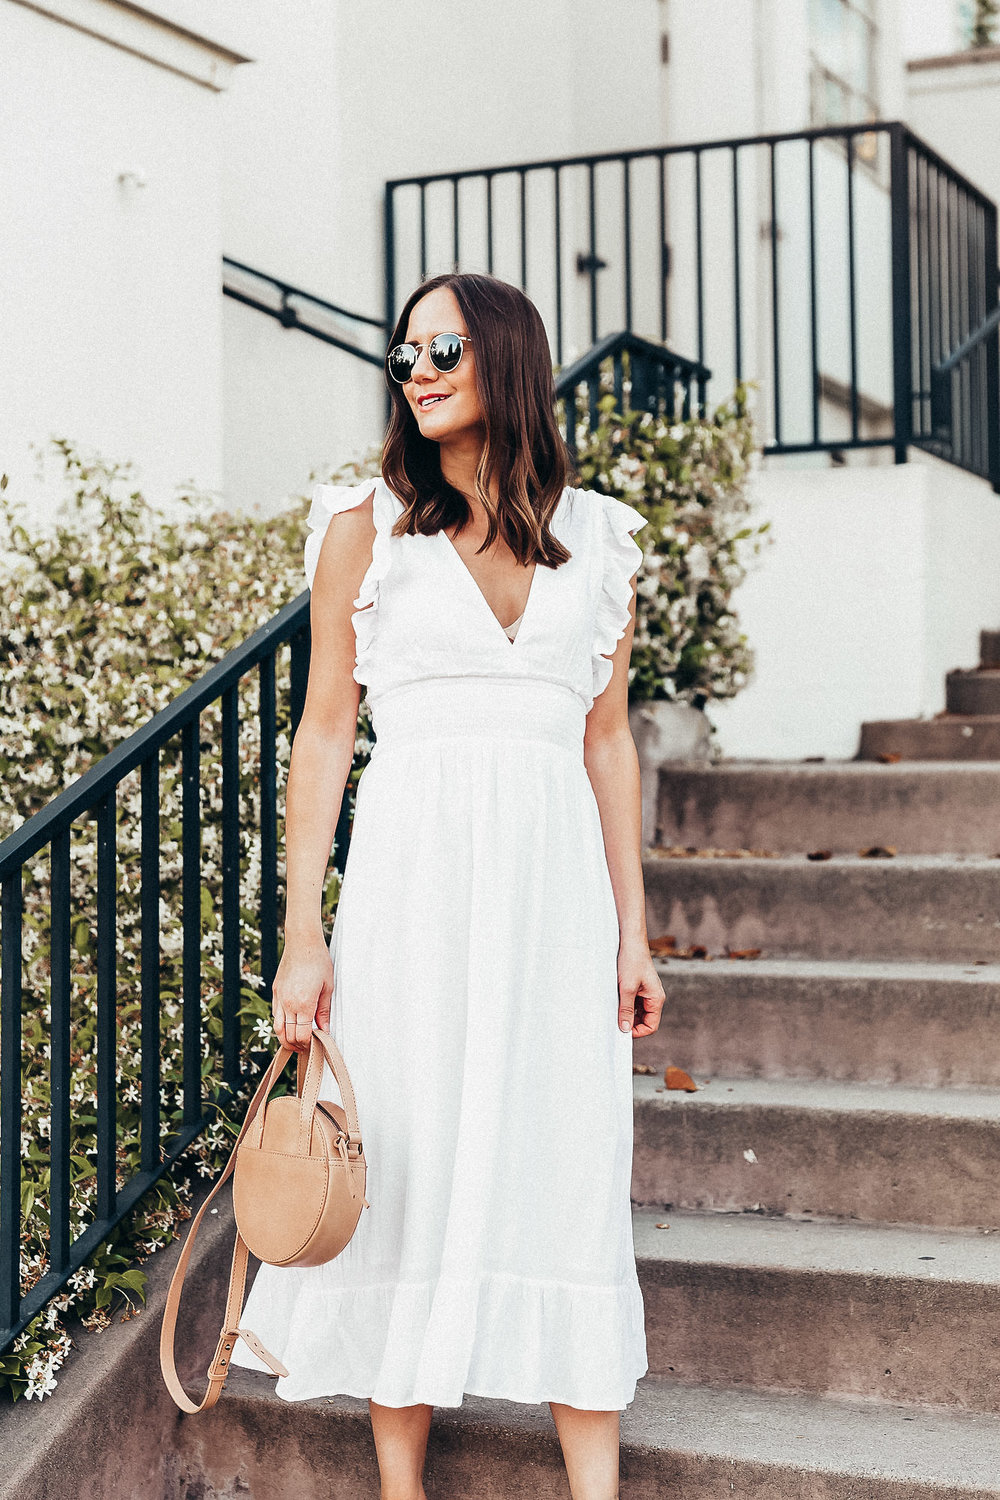 The Details:  Nordstrom Dress  |  Bella Vita Sandals  |  Madewell Bag  |  Ray-Ban Sunglasses  |  Madewell Pavé Circle Ring